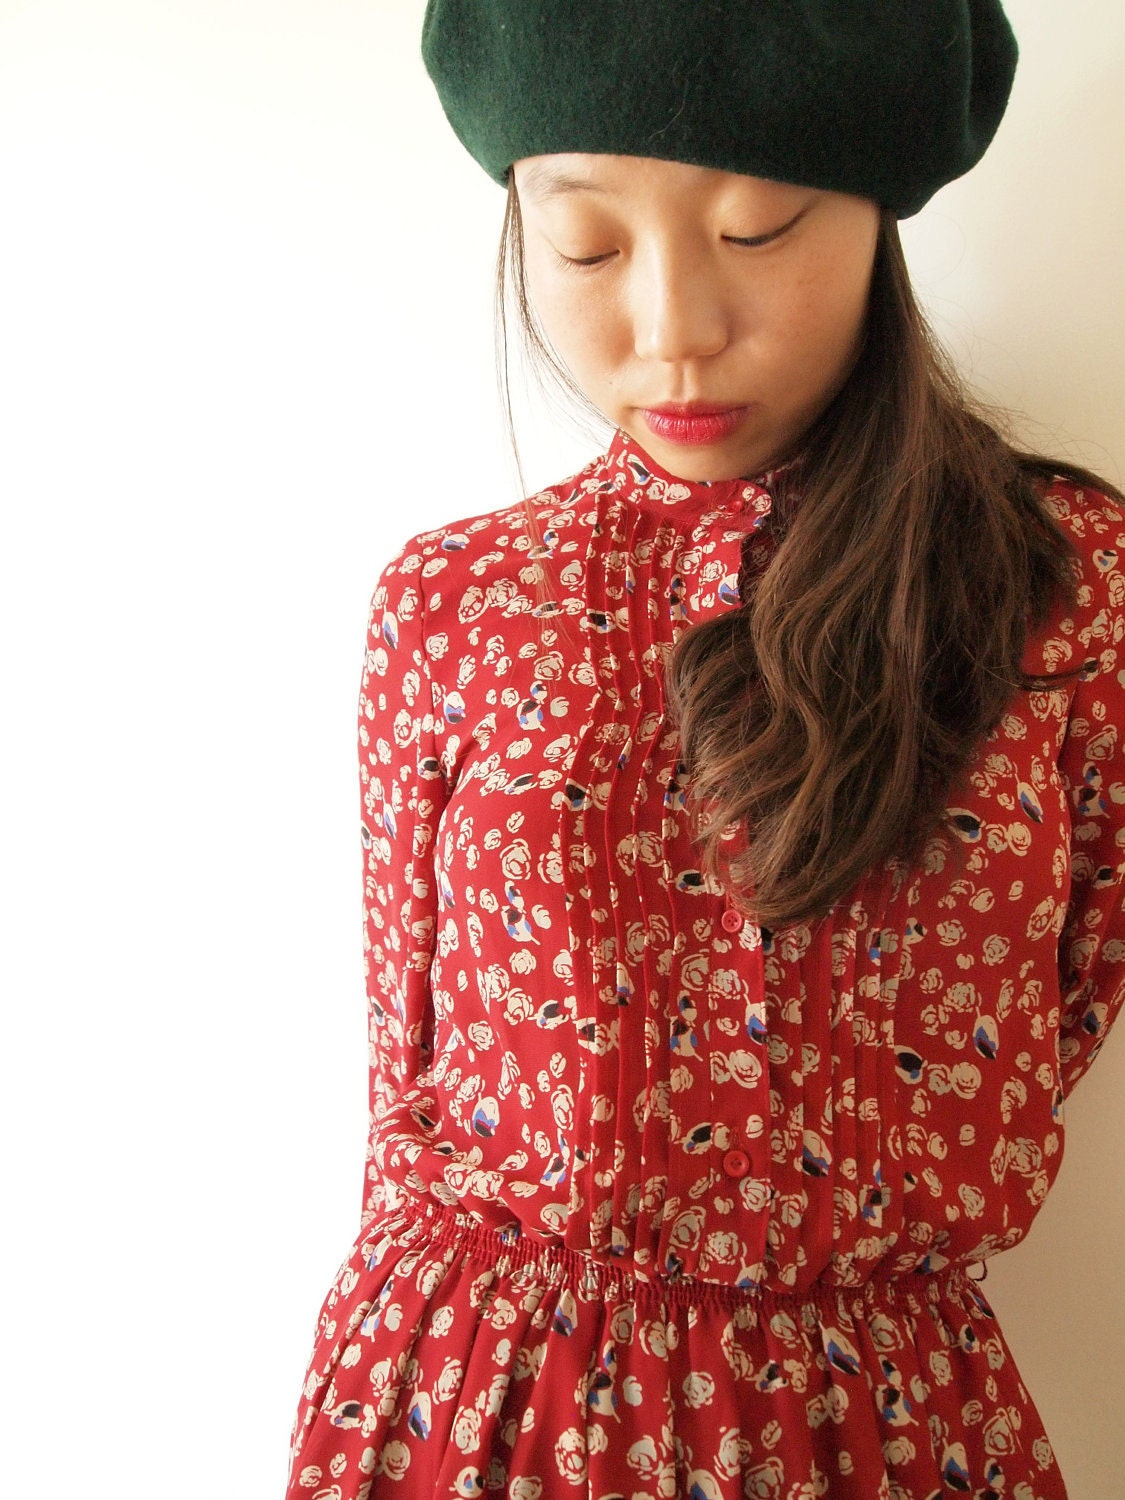 Red vintage dress, white rose pattern, xs - s, Japanese